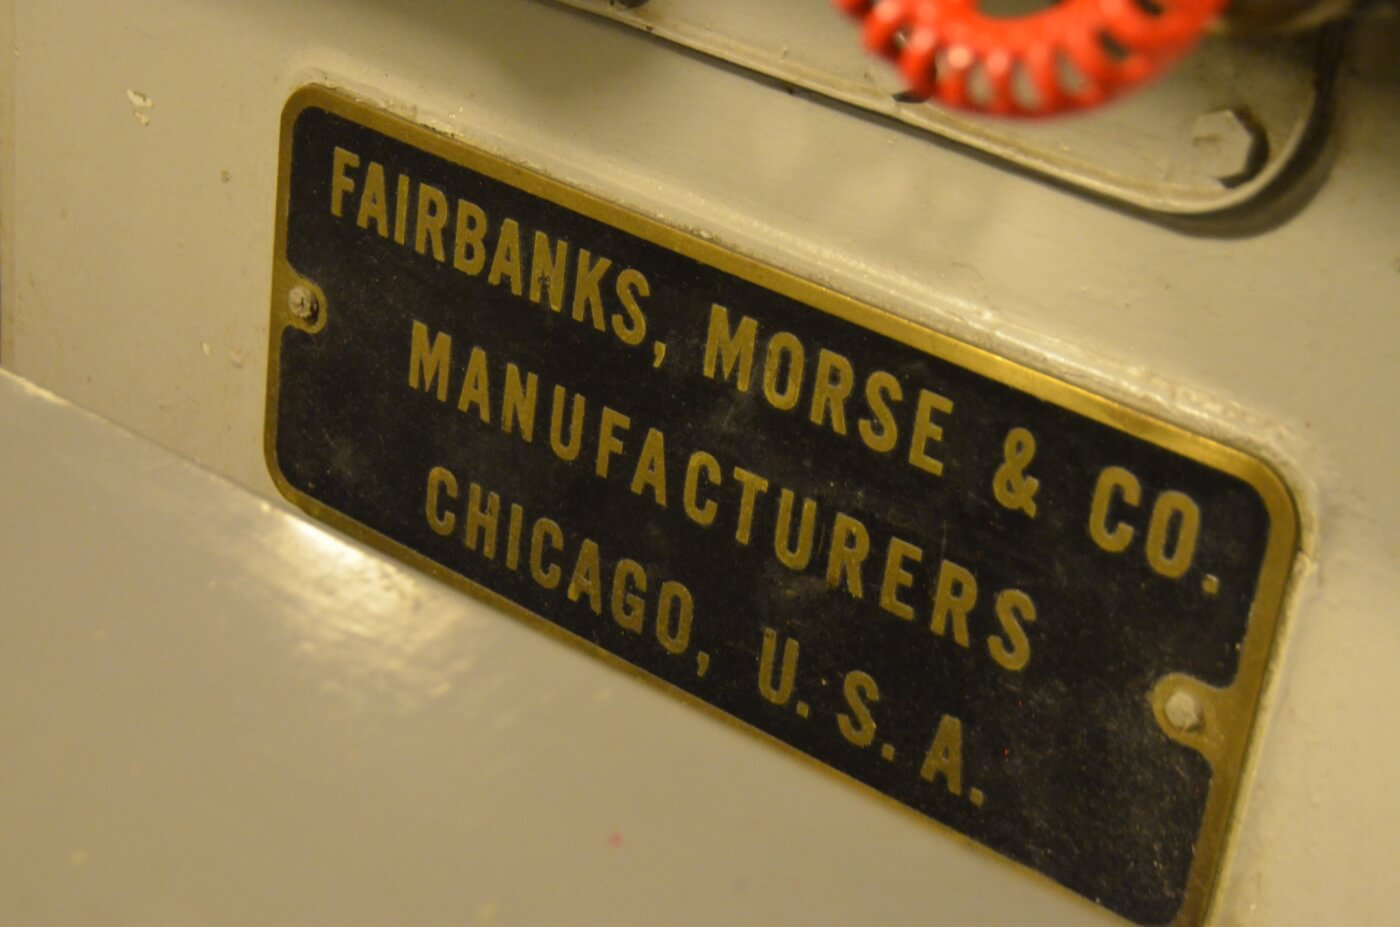 Fairbanks, Morse & Co.